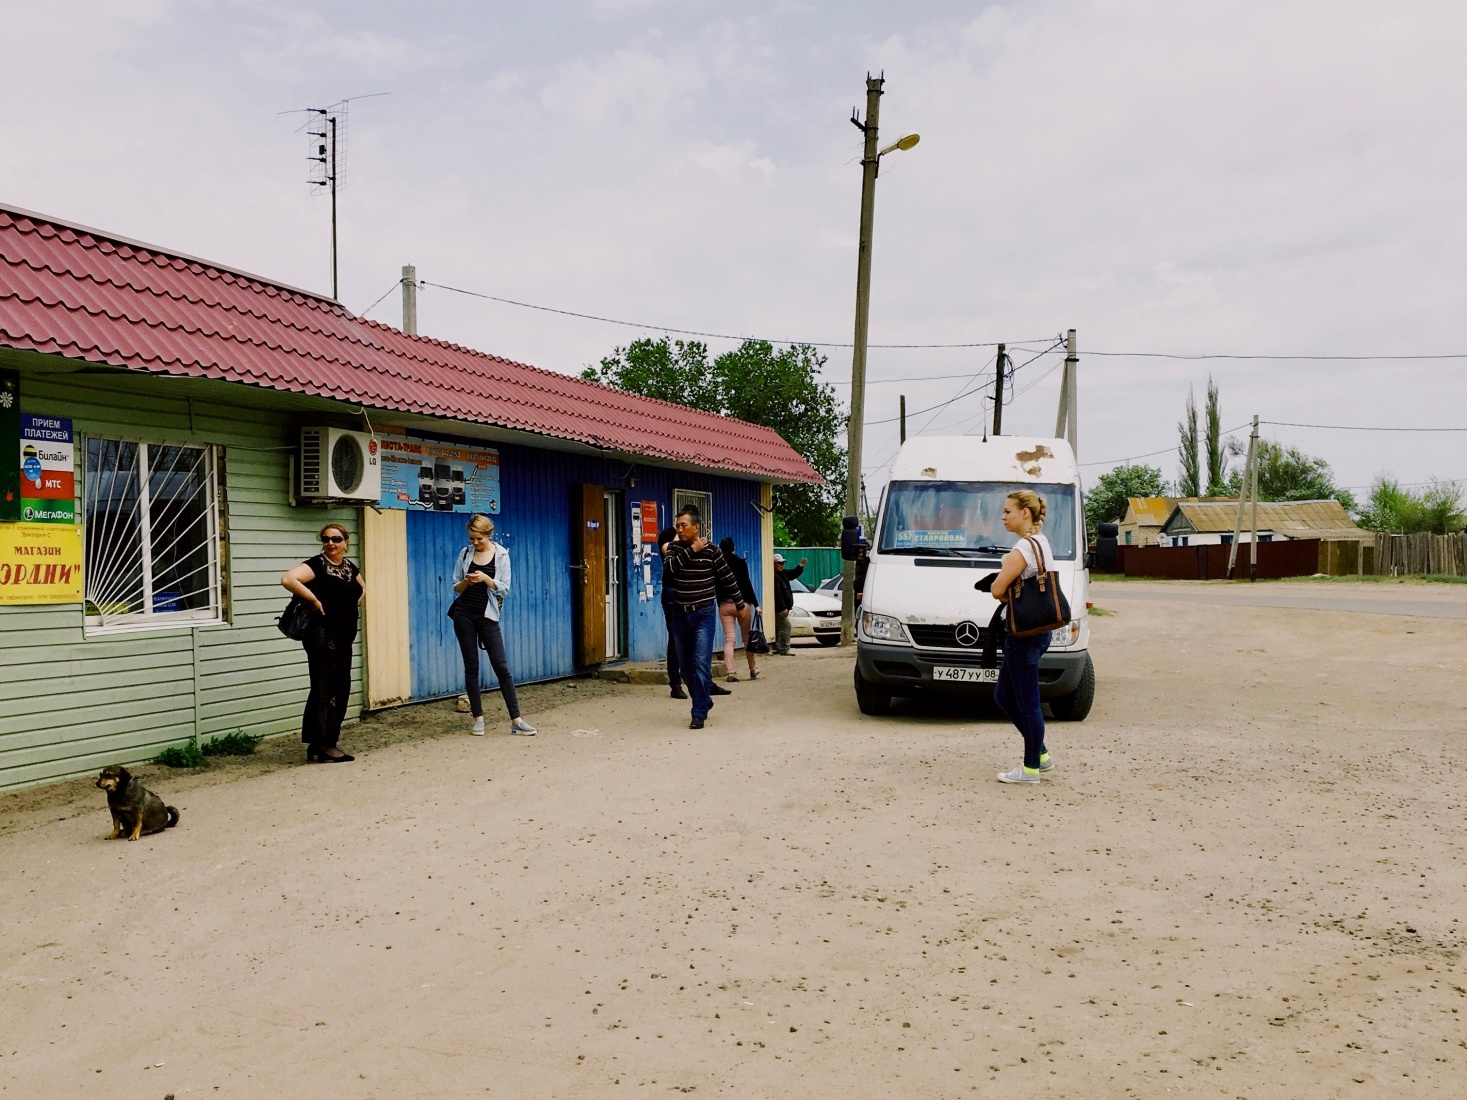 Minibus passengers walk around an empty dirt parking lot on a break during the five-hour drive through the steppe from Volgograd to Elista, Russia, in Kalmyk territory.